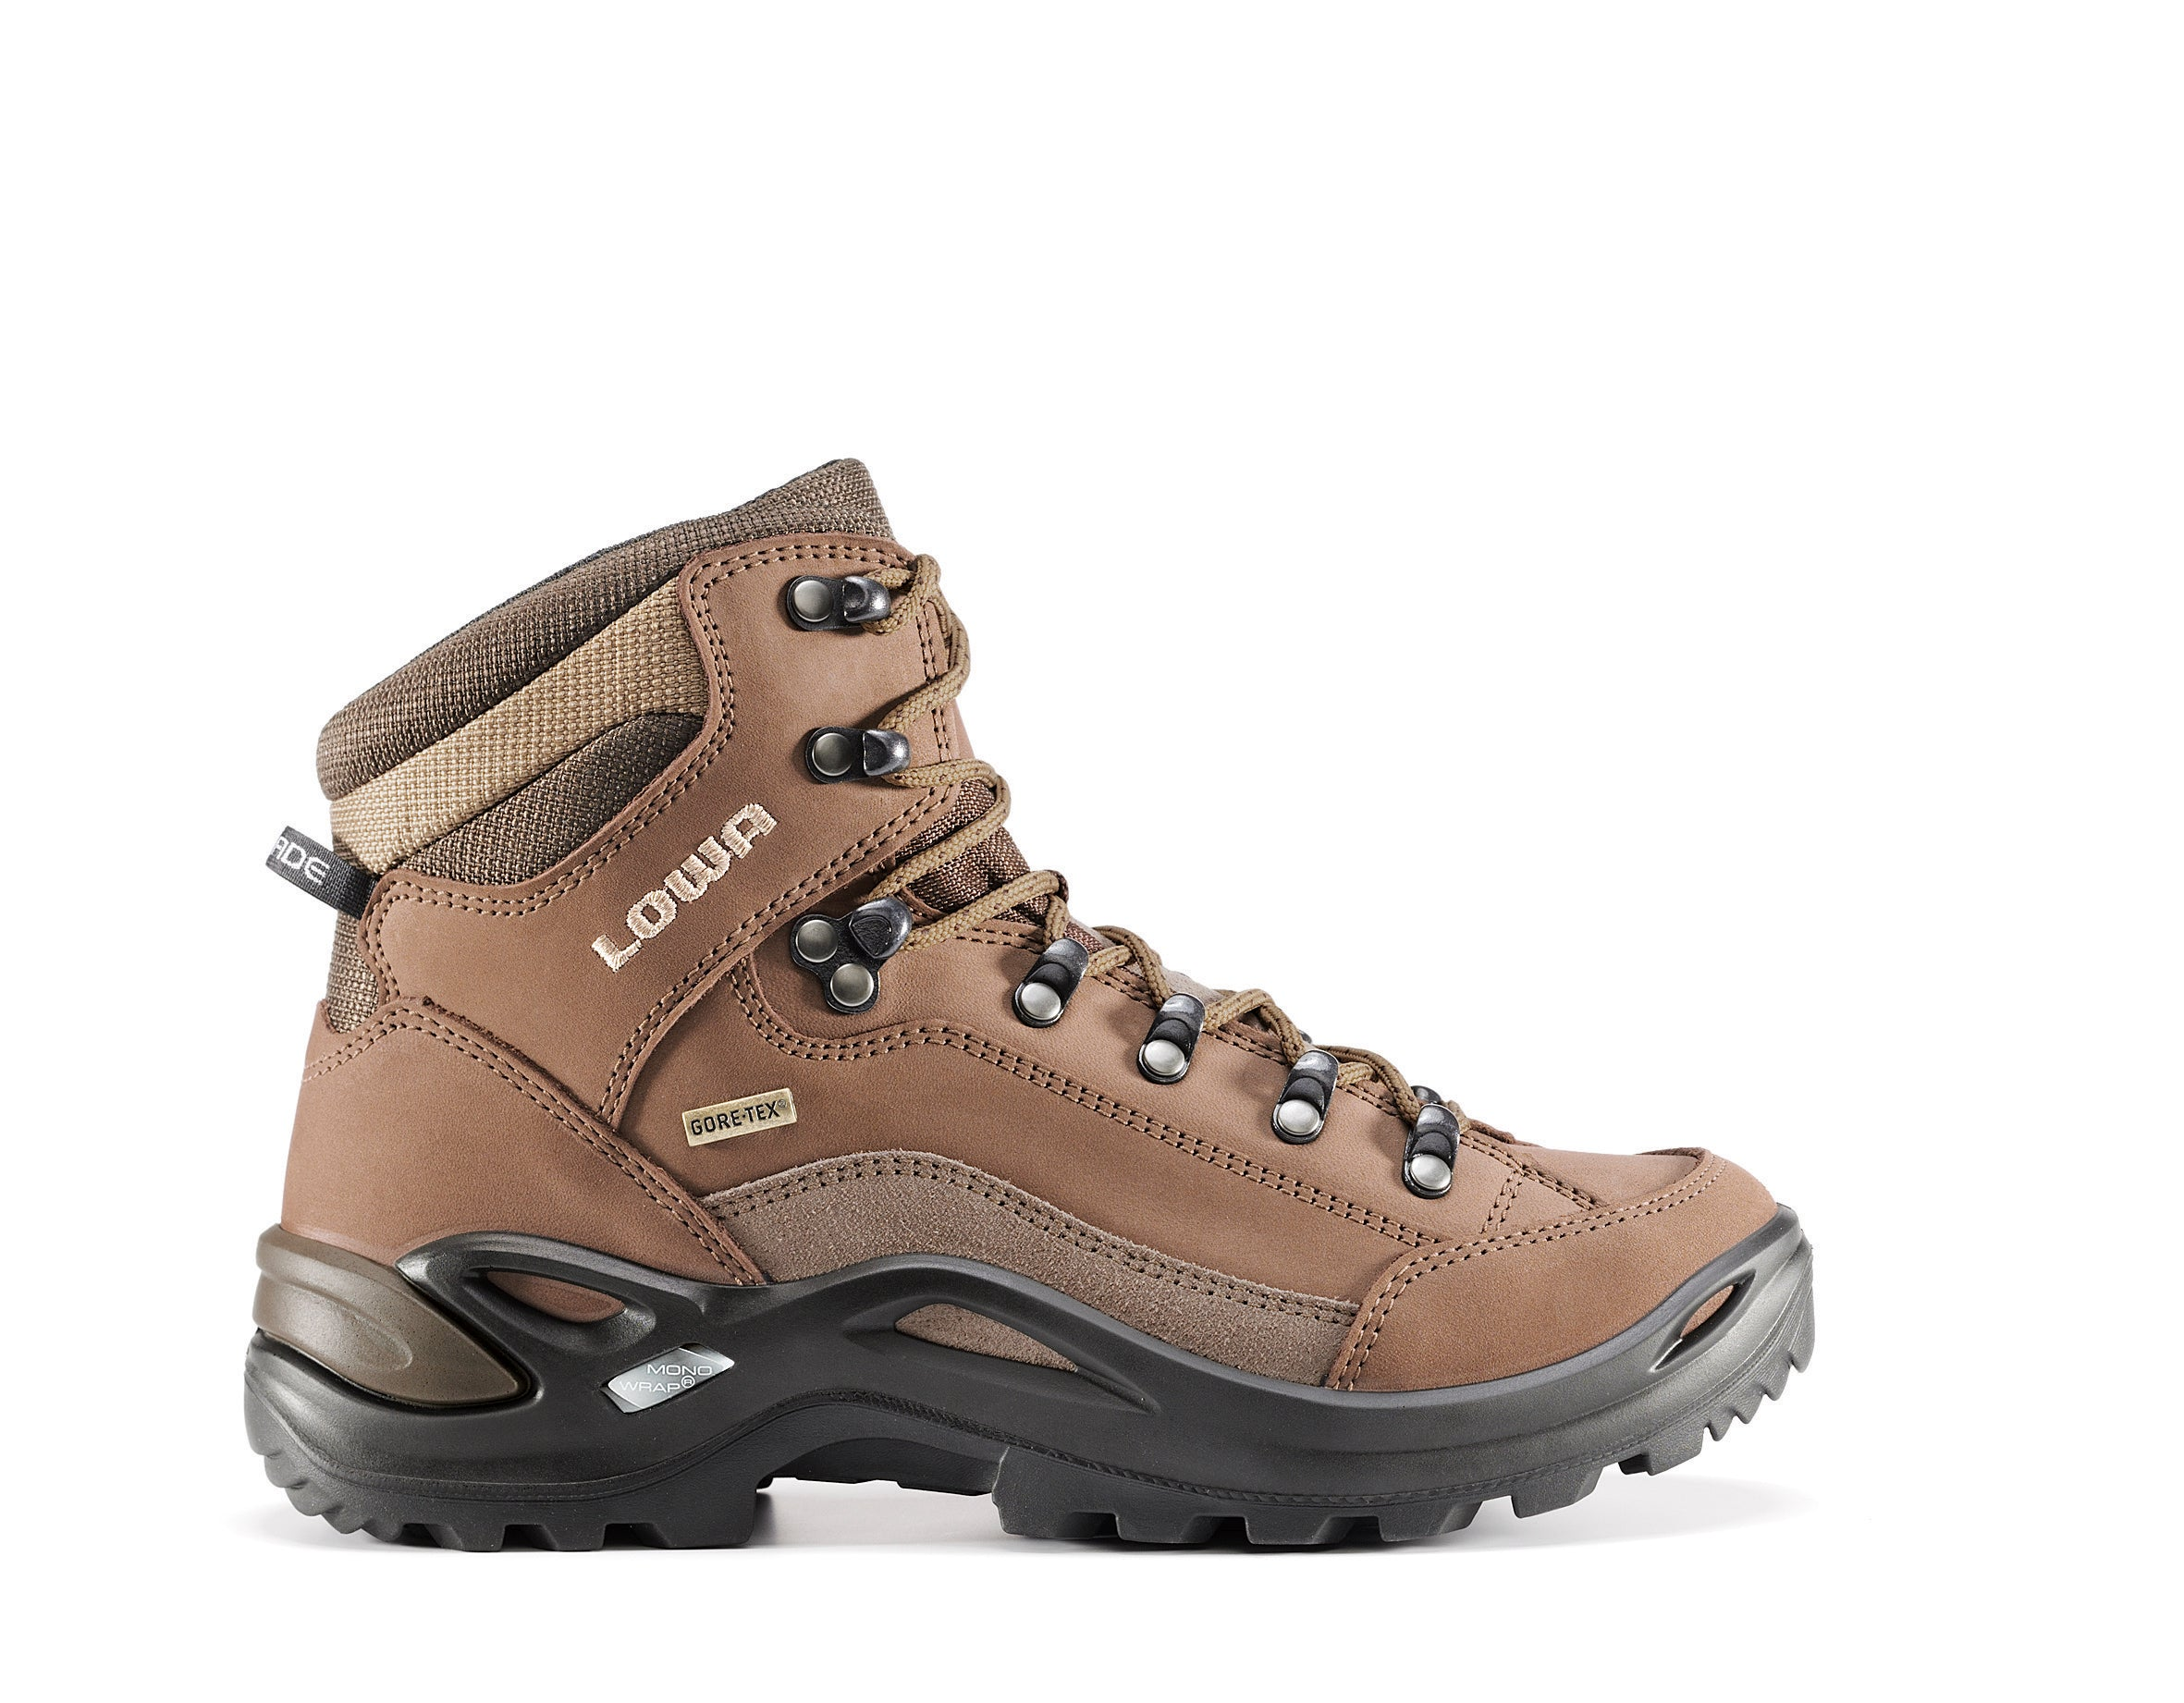 Lowa Renegade Mid GTX Walking Boot for Ladies in Taupe